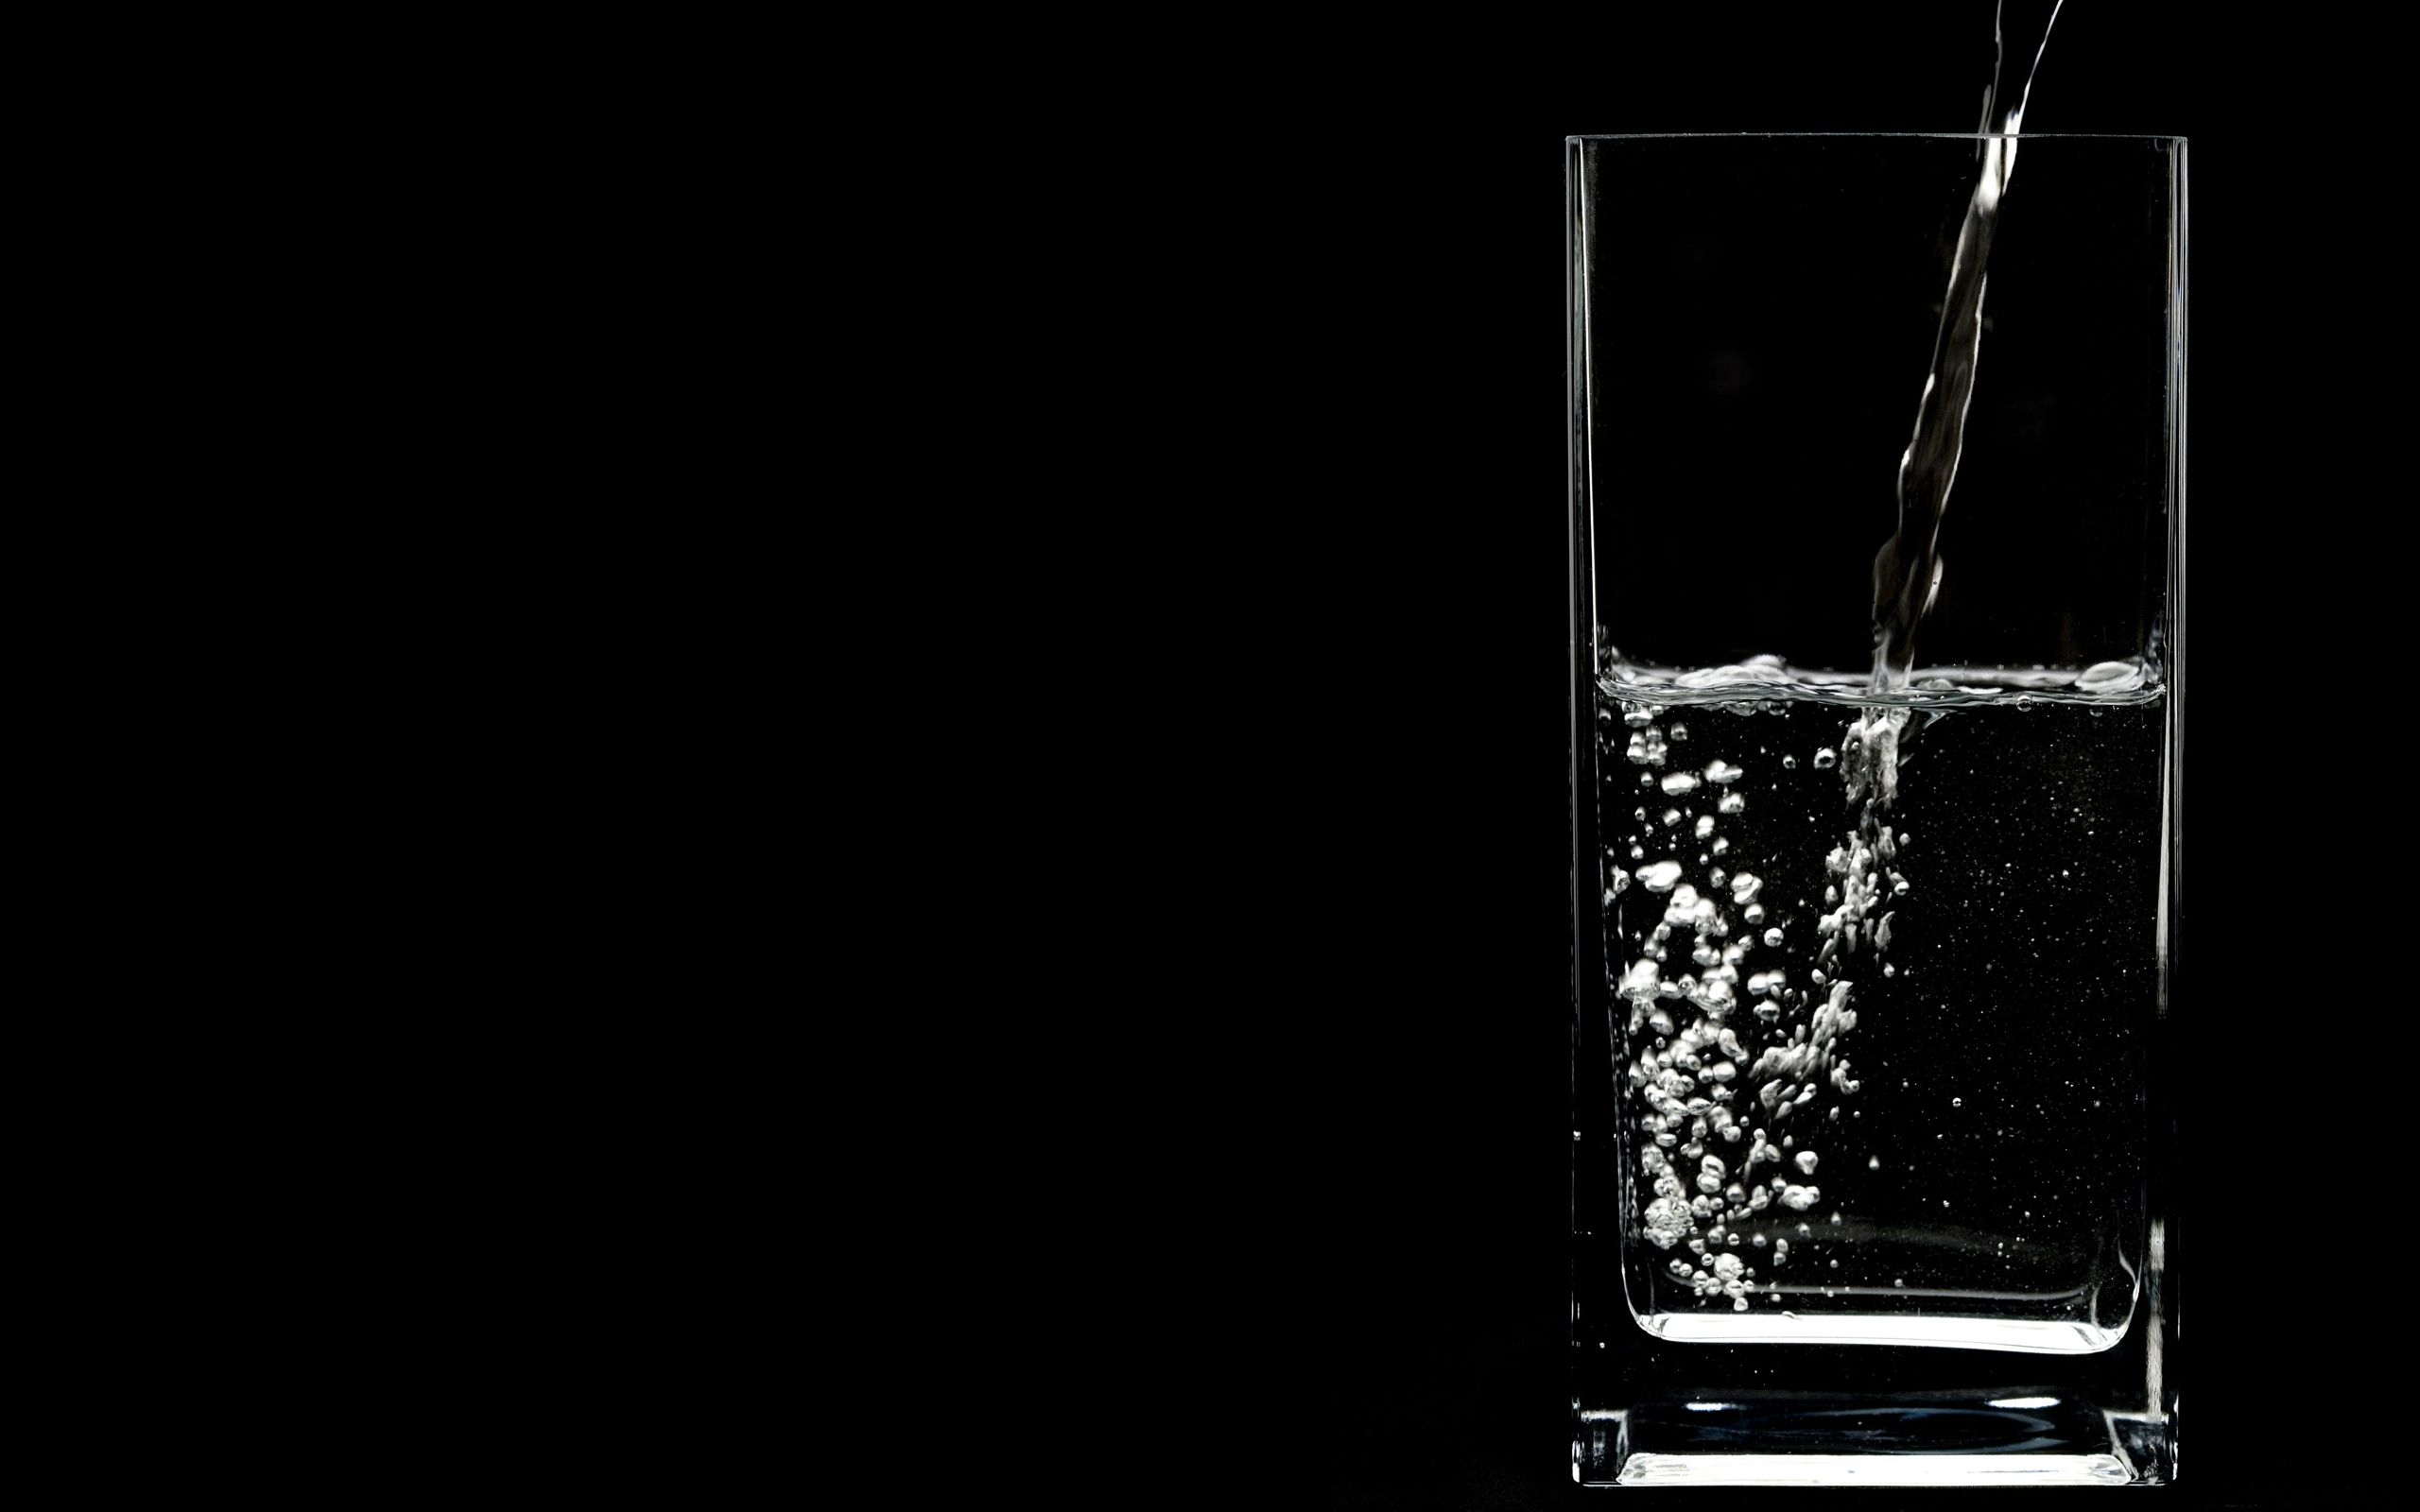 Water Glass Hd Wallpapers For Mobile Hd Cool Wallpapers Mobile